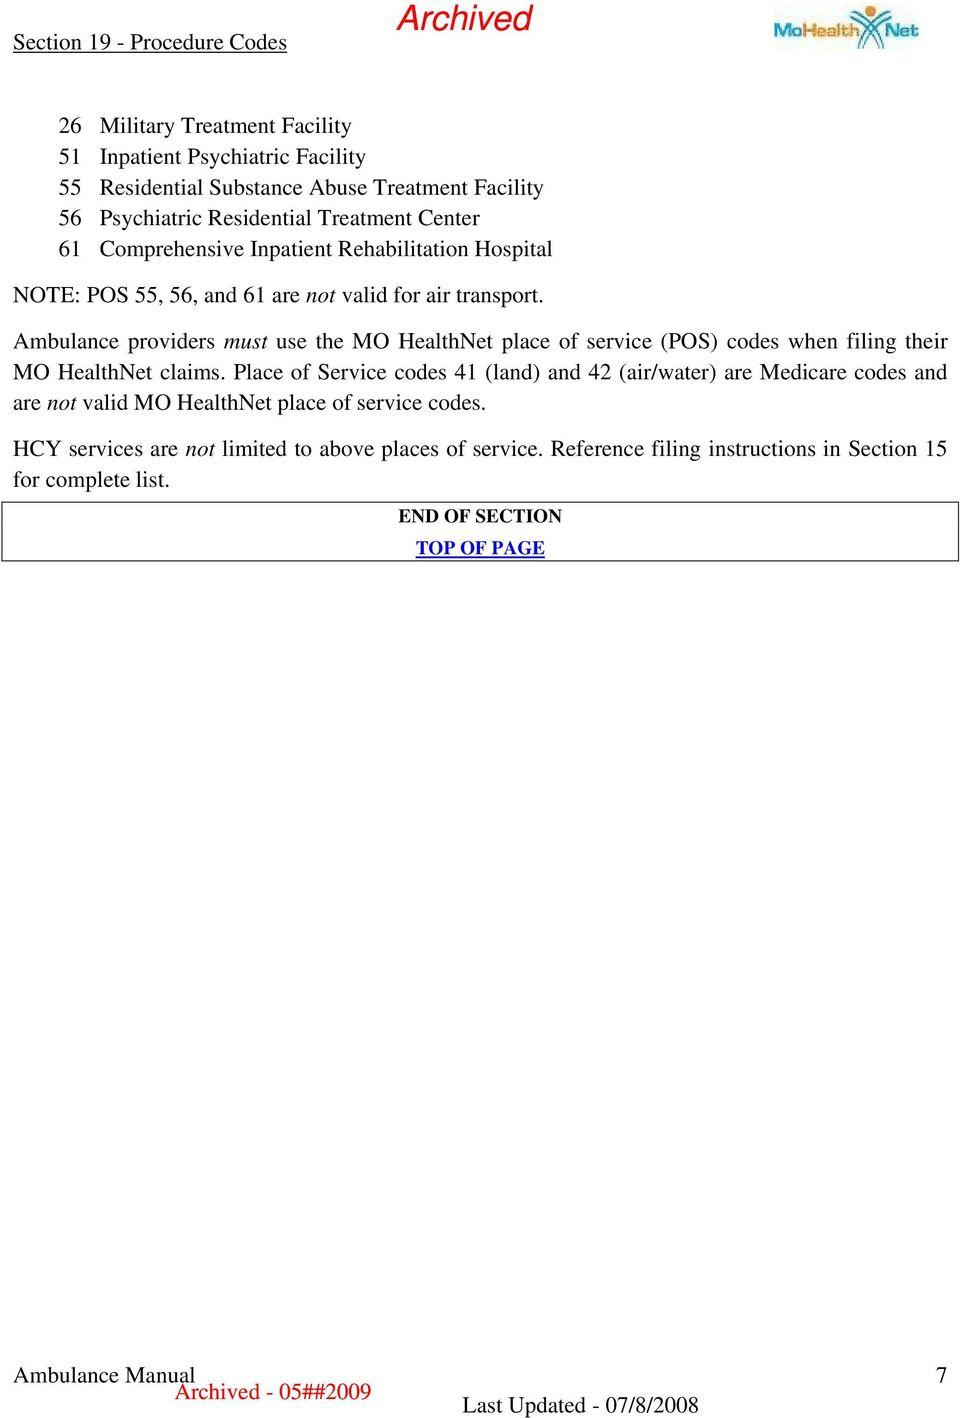 Ambulance providers must use the MO HealthNet place of service (POS) codes when filing their MO HealthNet claims.